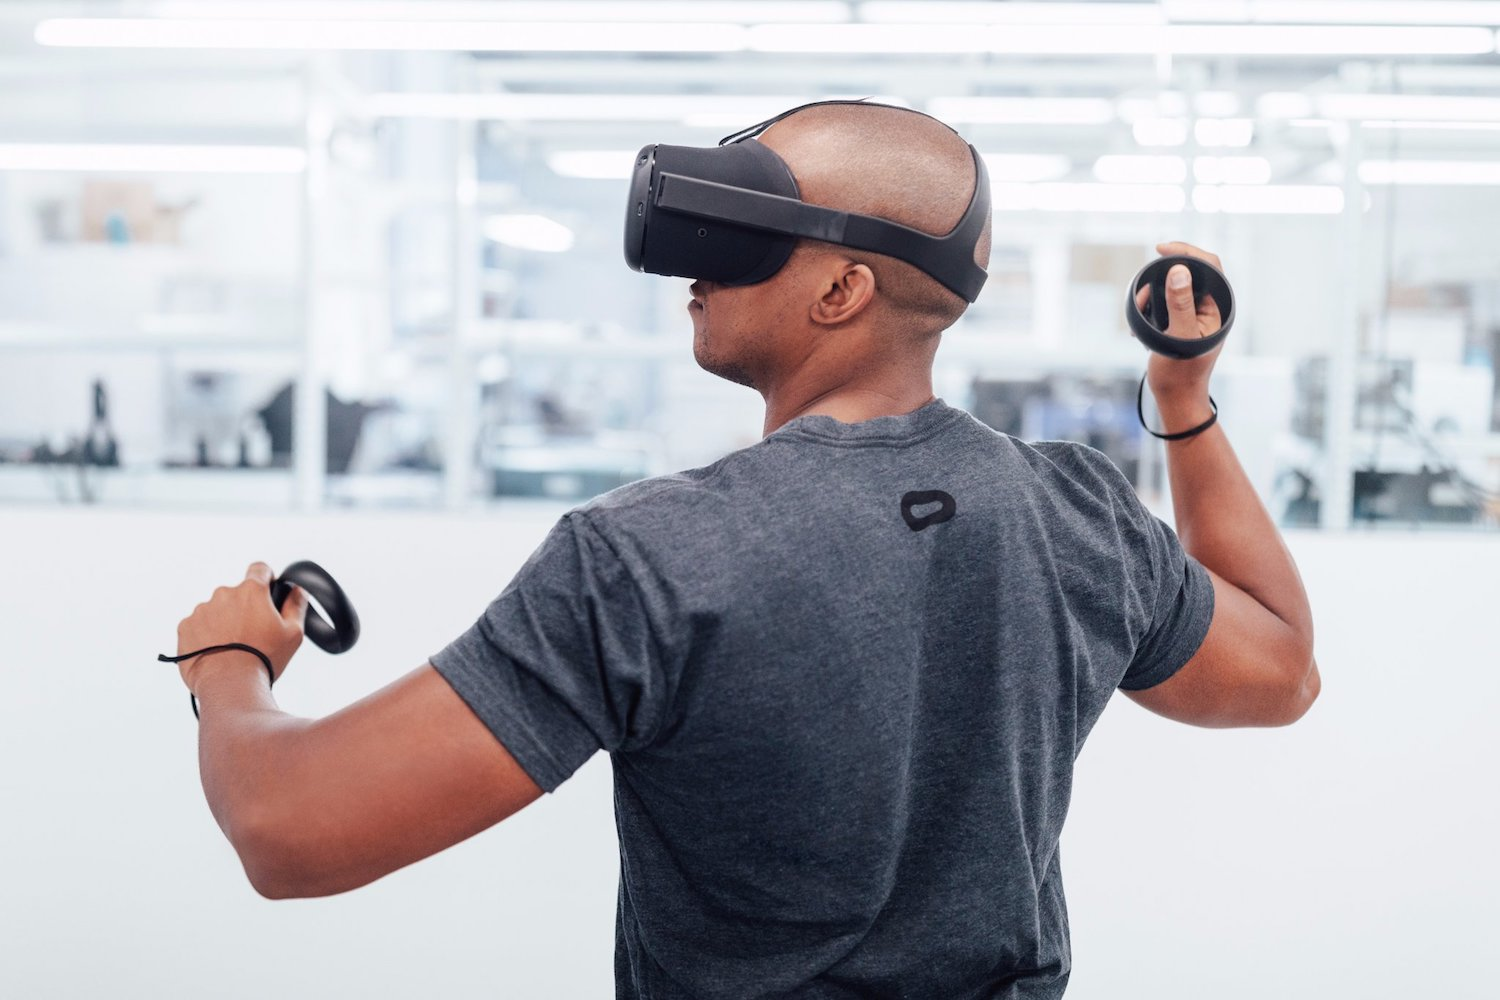 Oculus Has Begun Shipping The Santa Cruz VR Headsets To Developers